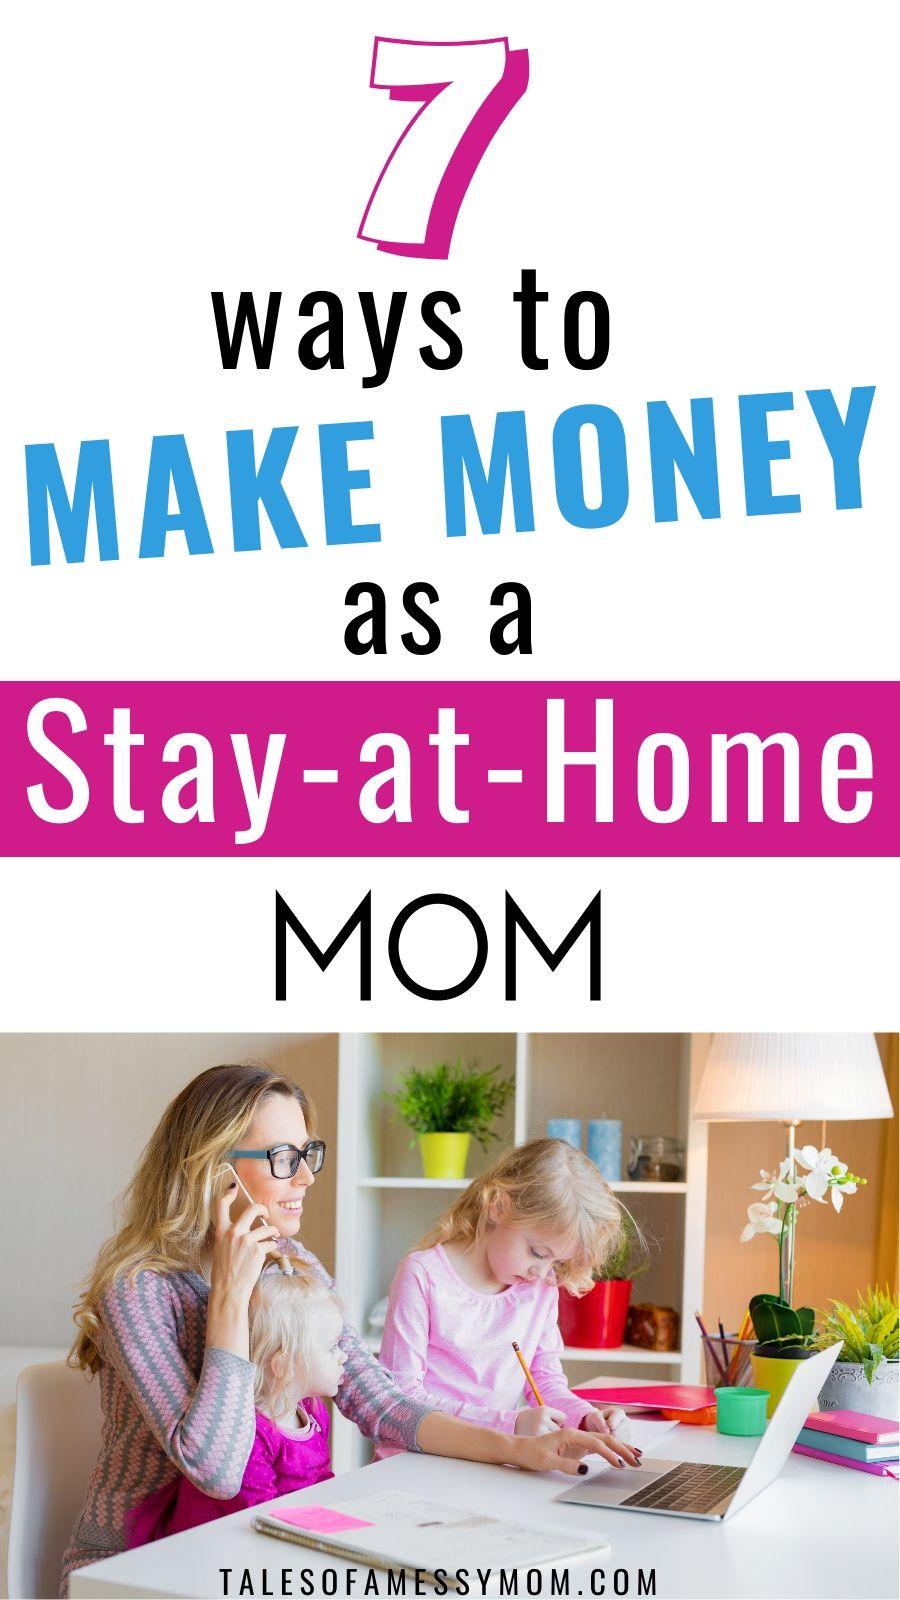 7 Ways to Make Money as a Stay-at-Home Mom #stayathome